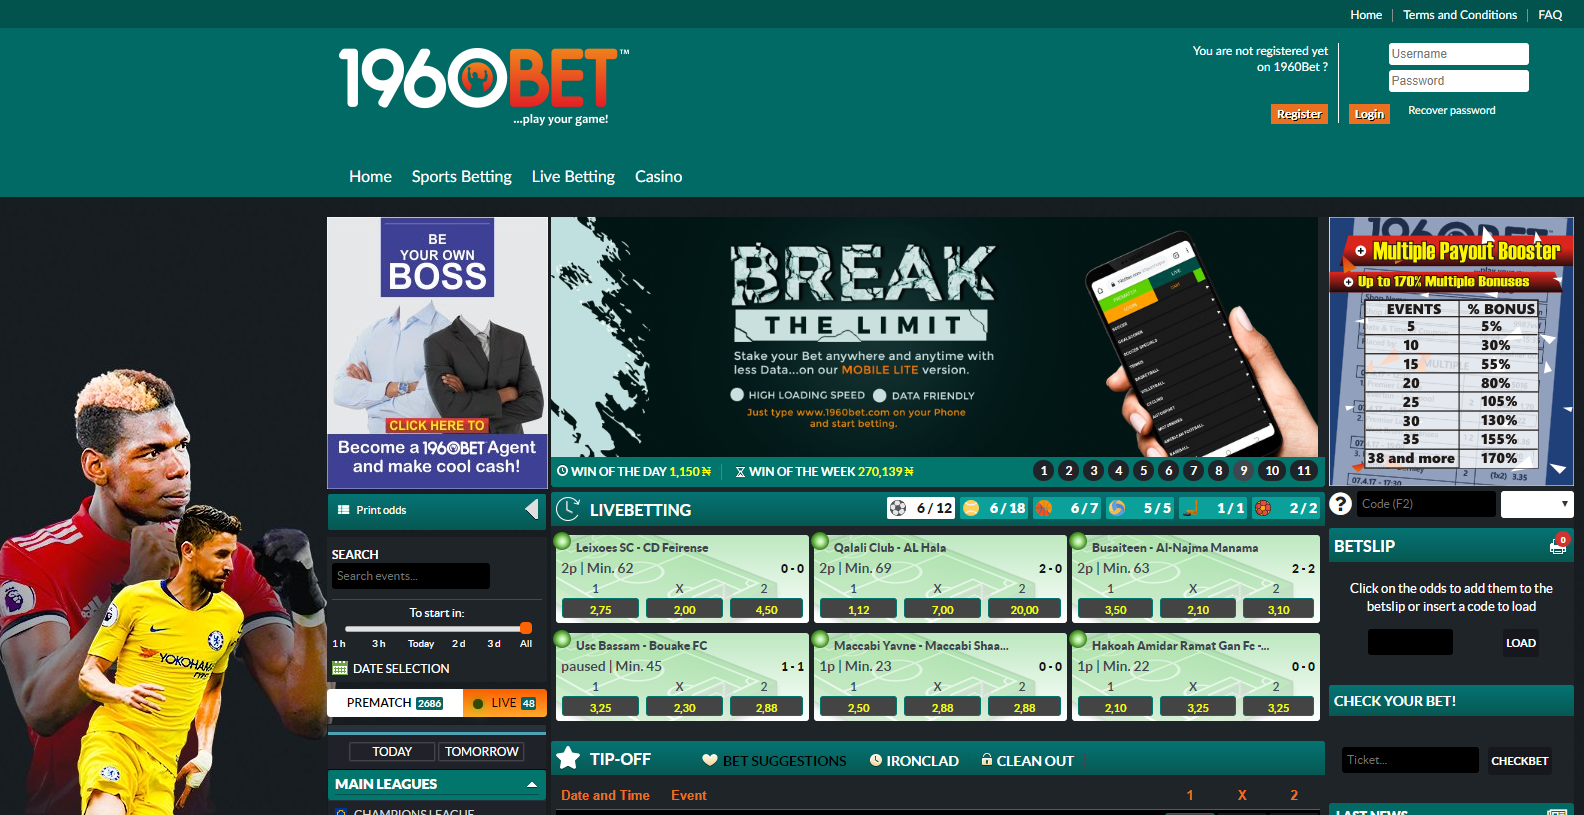 1960bet Nigeria Sports Betting Review May 2021